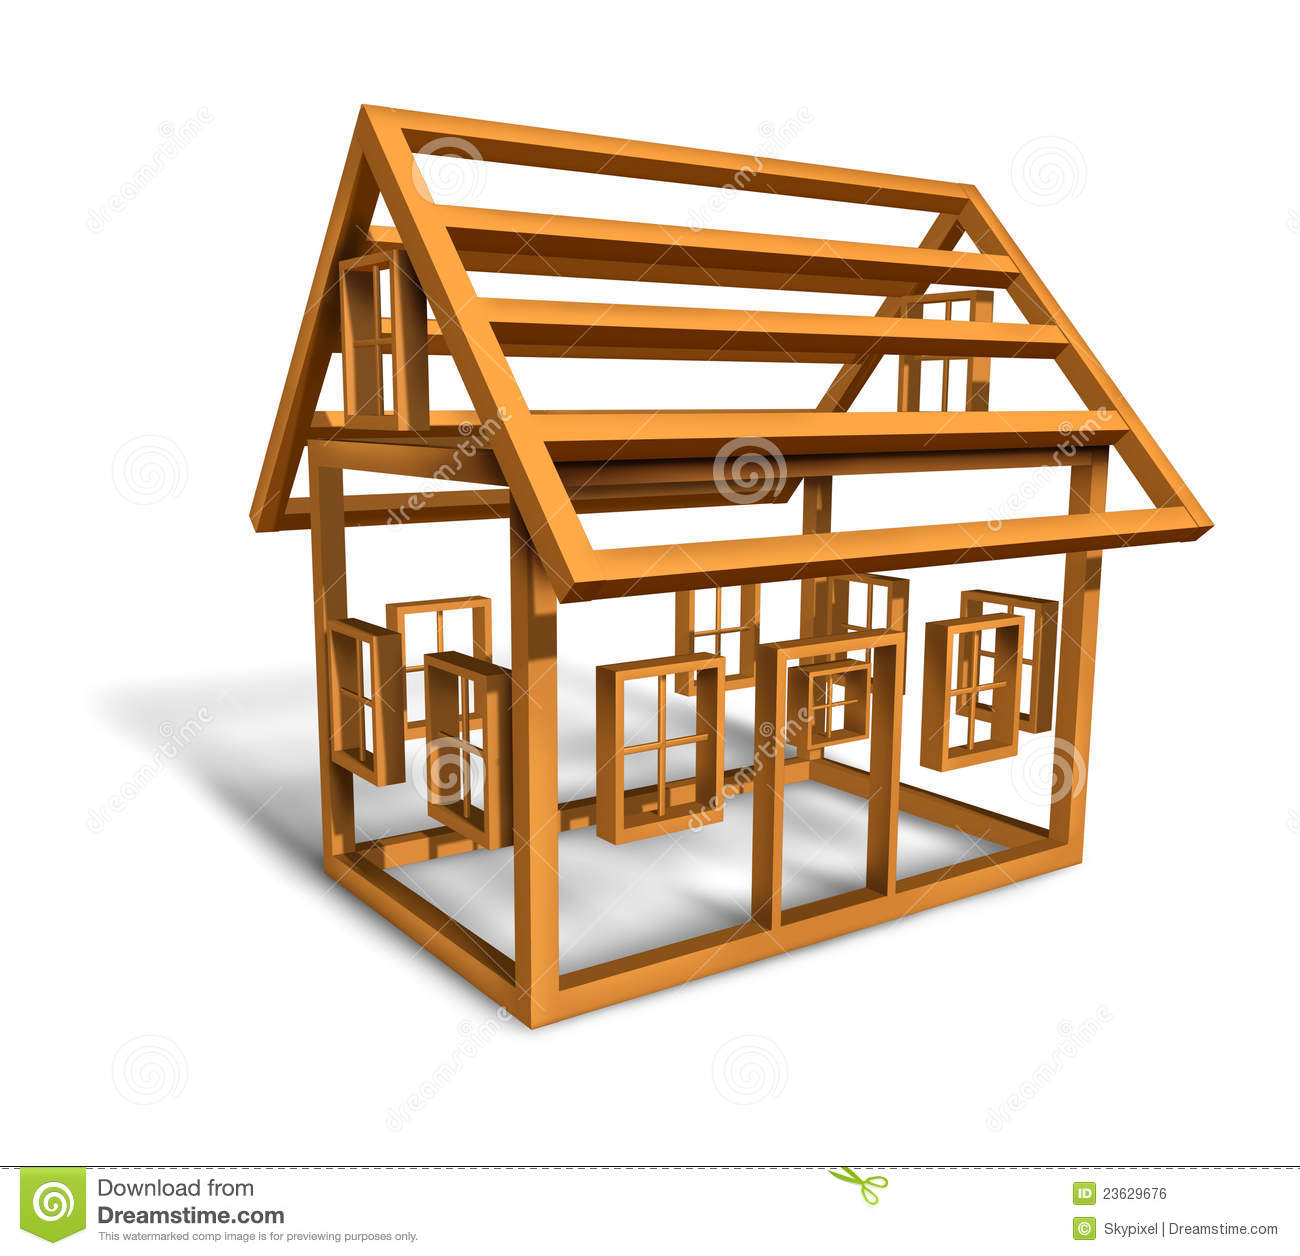 Structure clip art clipart panda free clipart images Home design and structure